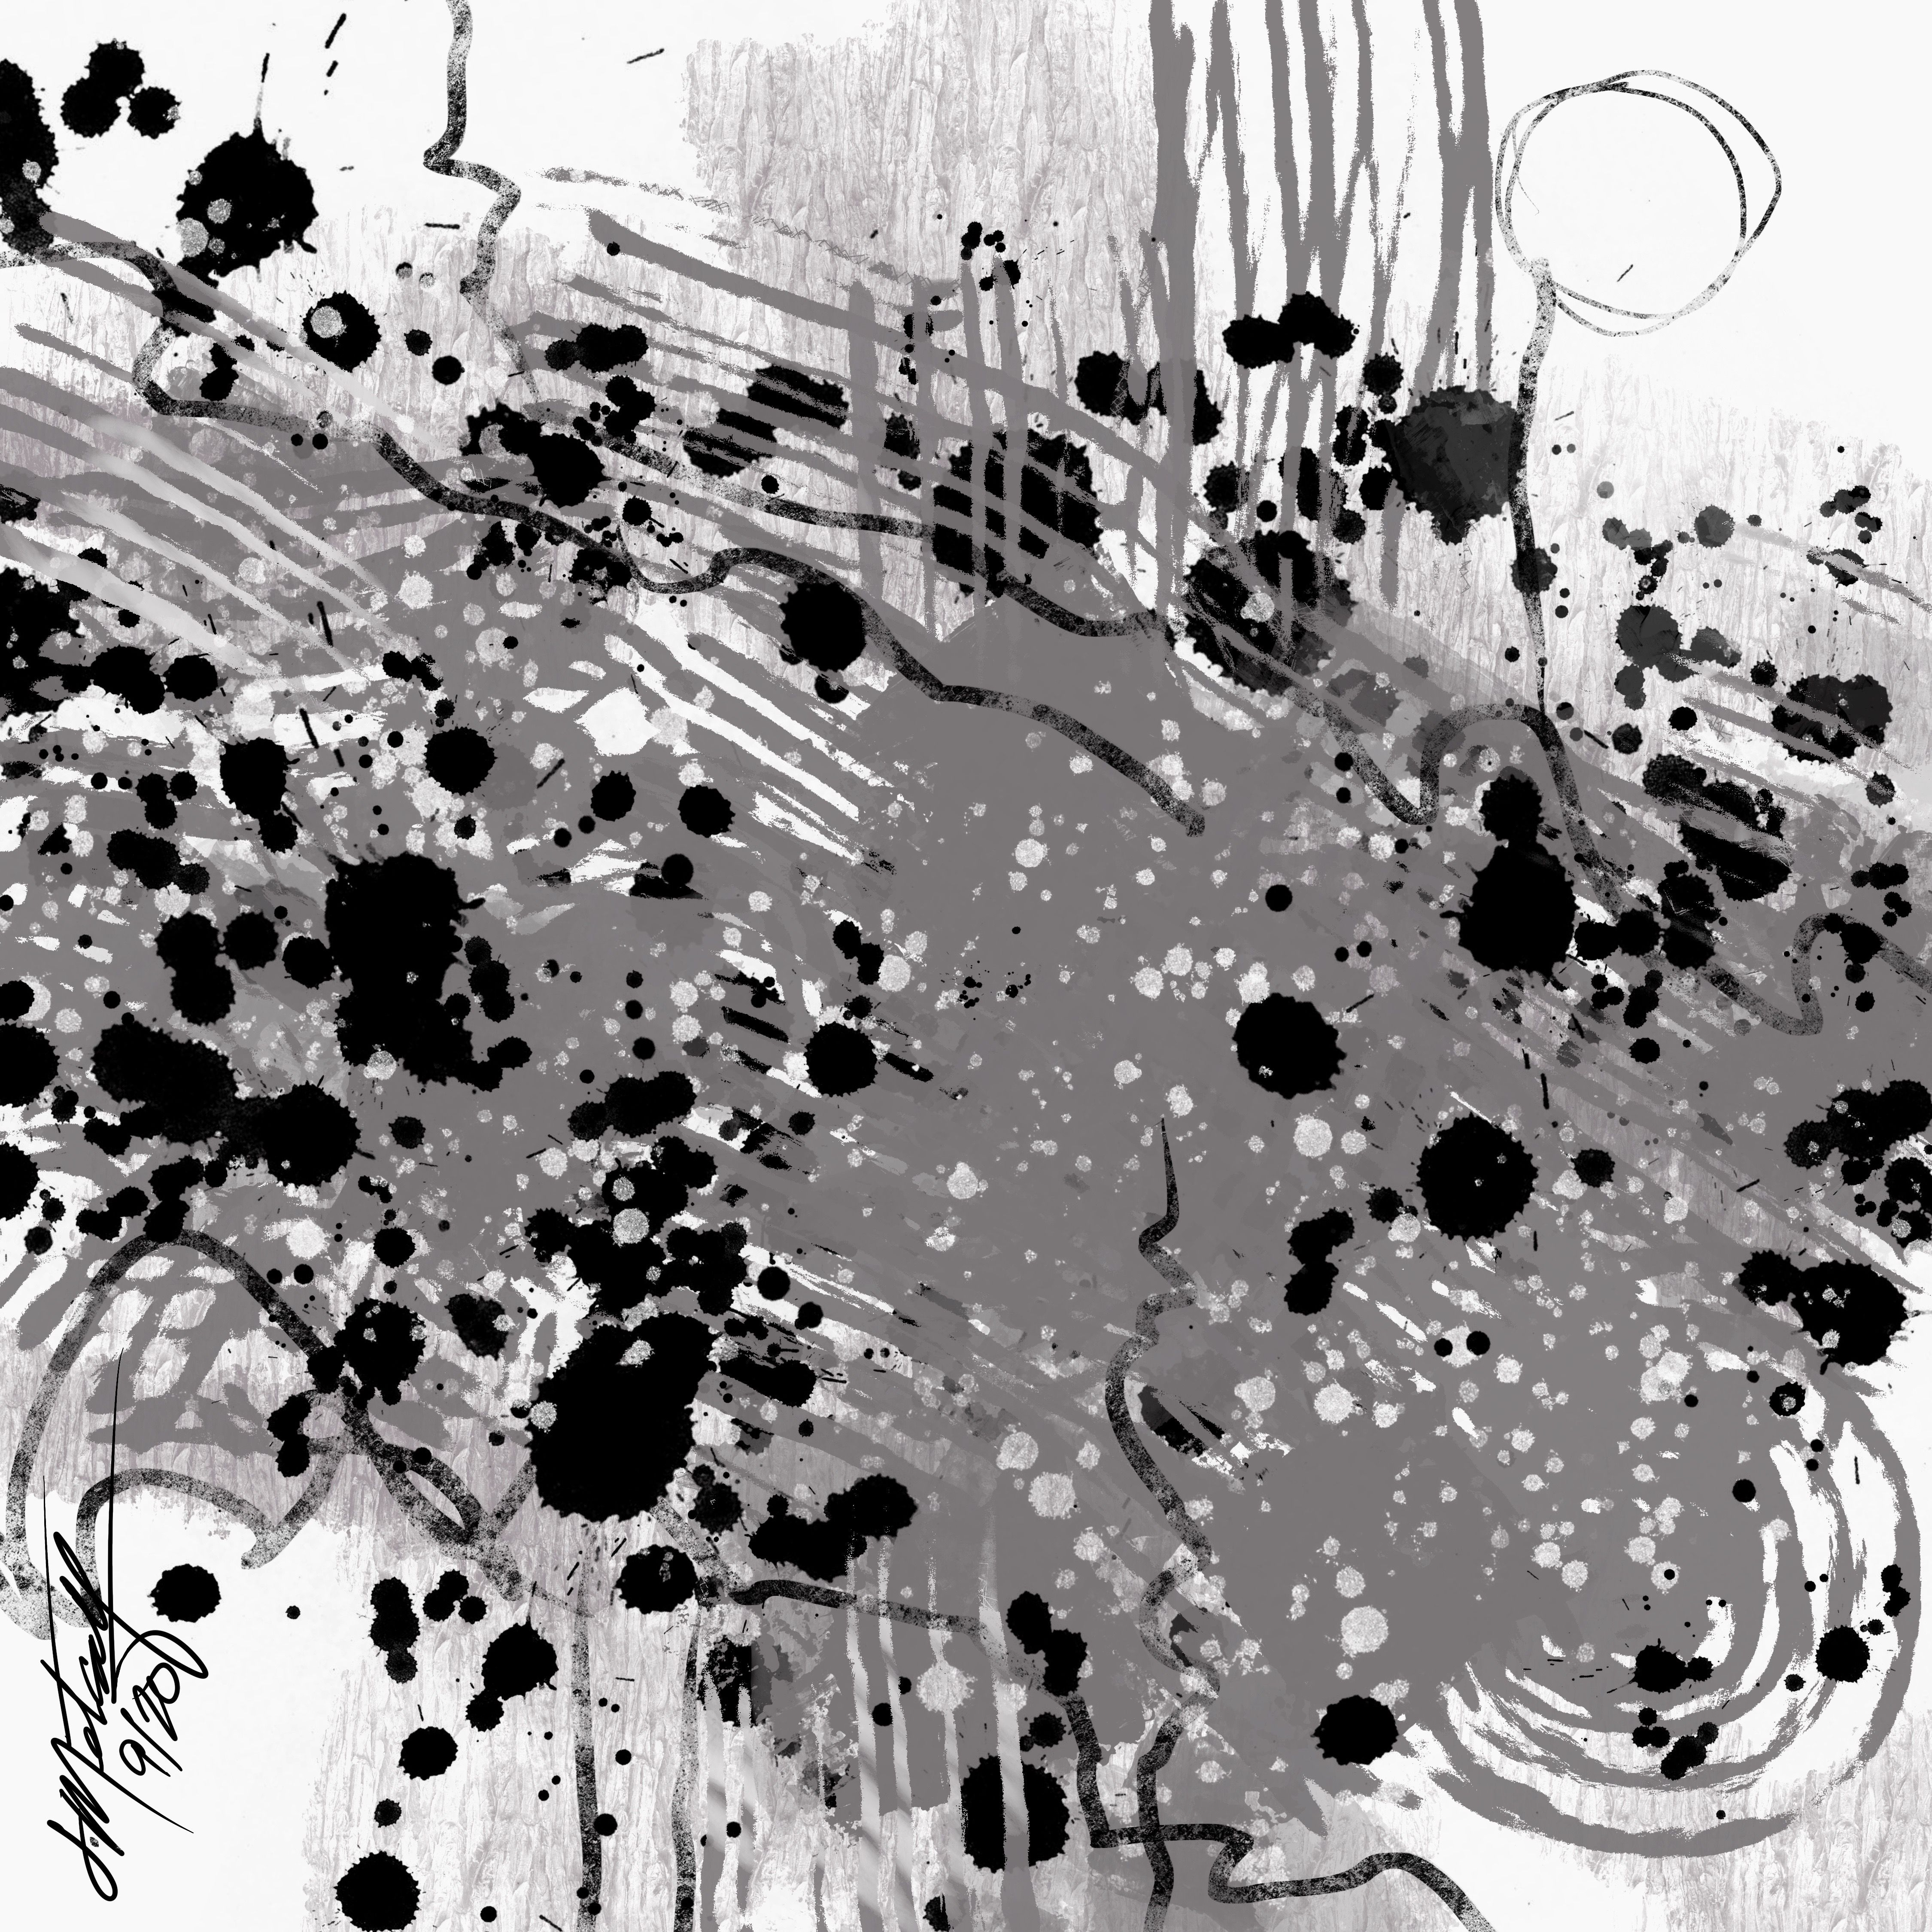 Gray Matter - abstract expressionist painting. Buy prints from 8